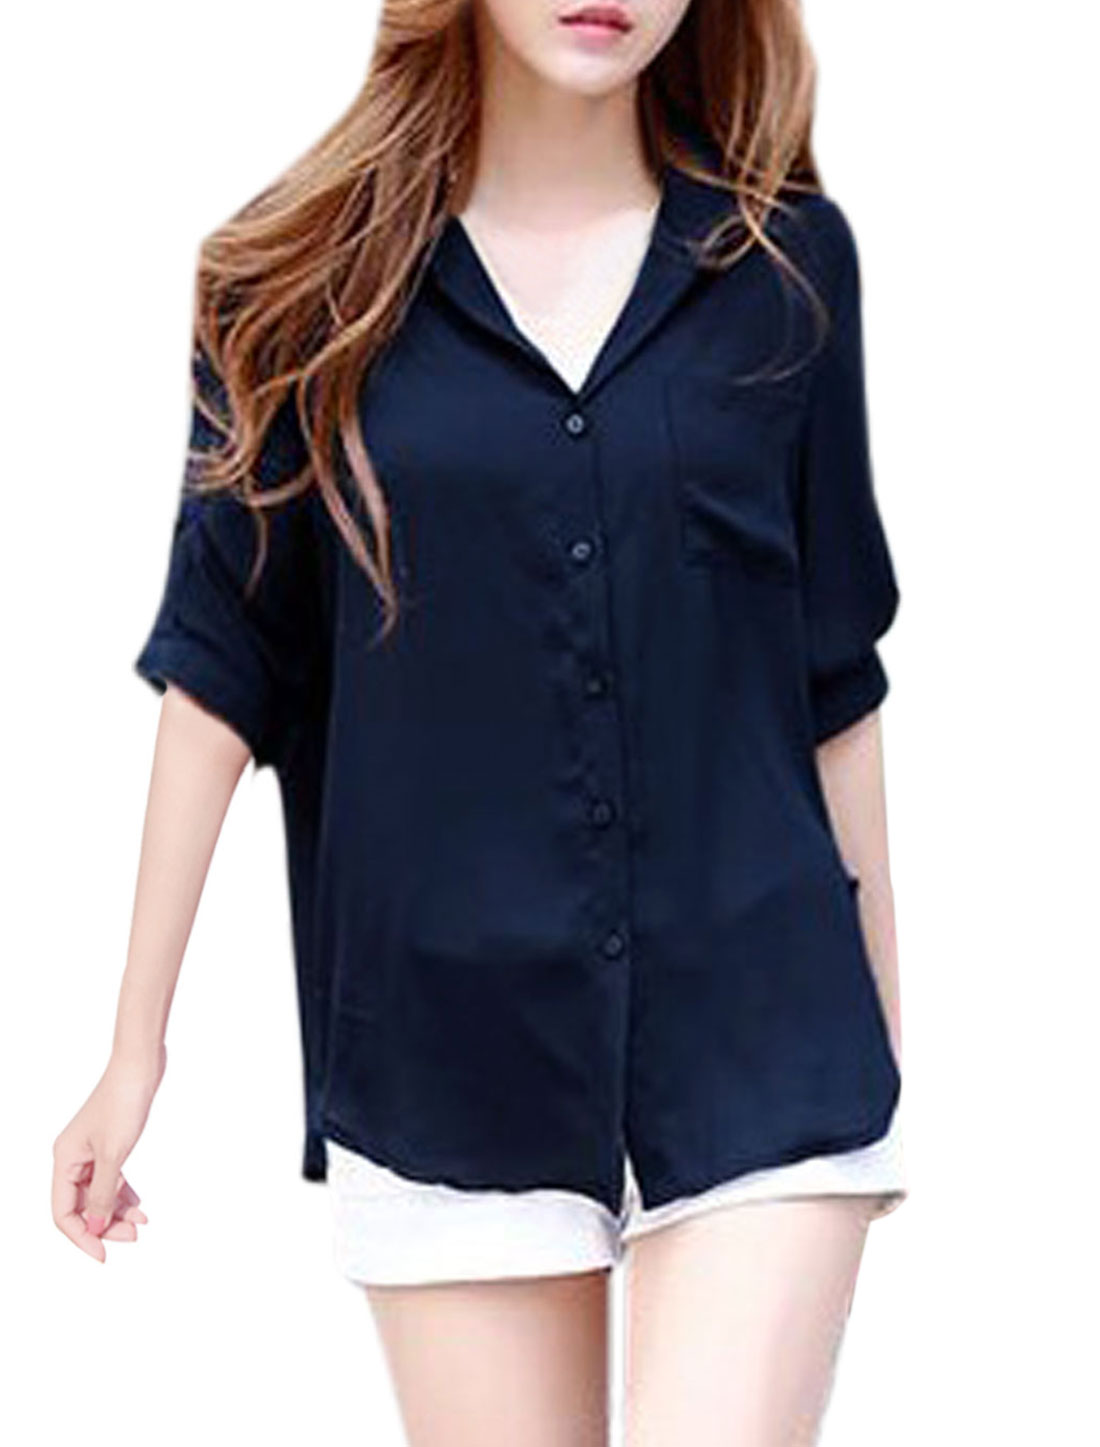 Women Point Collar One Bust Pocket Round Hem Chiffon Shirt Navy Blue XS